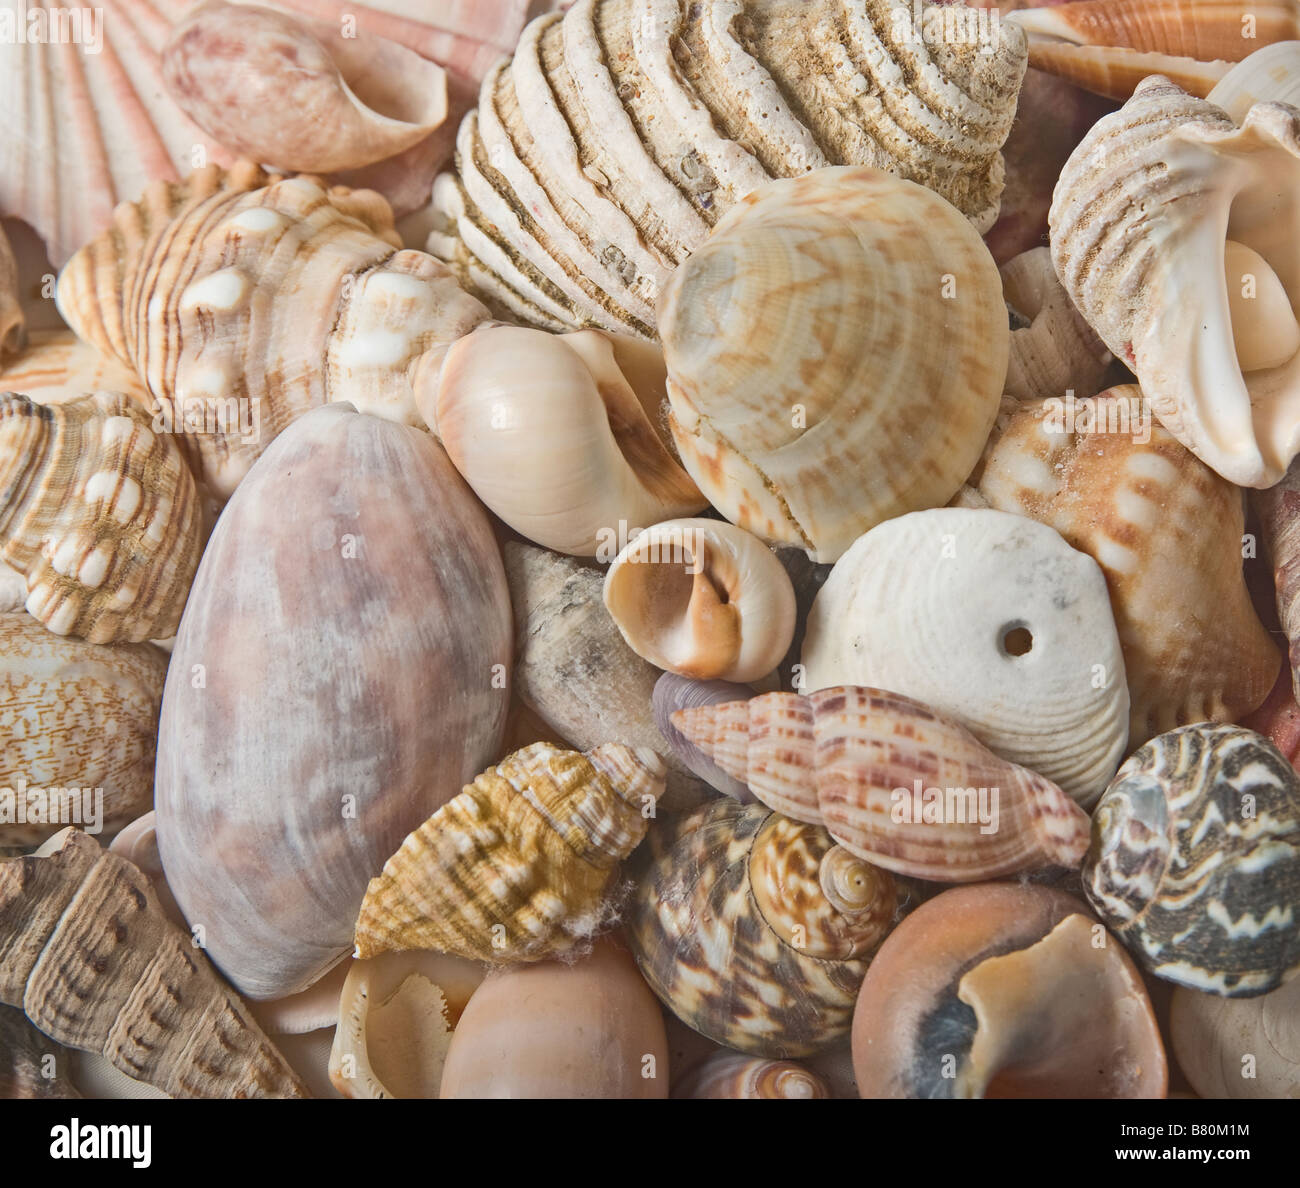 great image of sea shells as a background - Stock Image